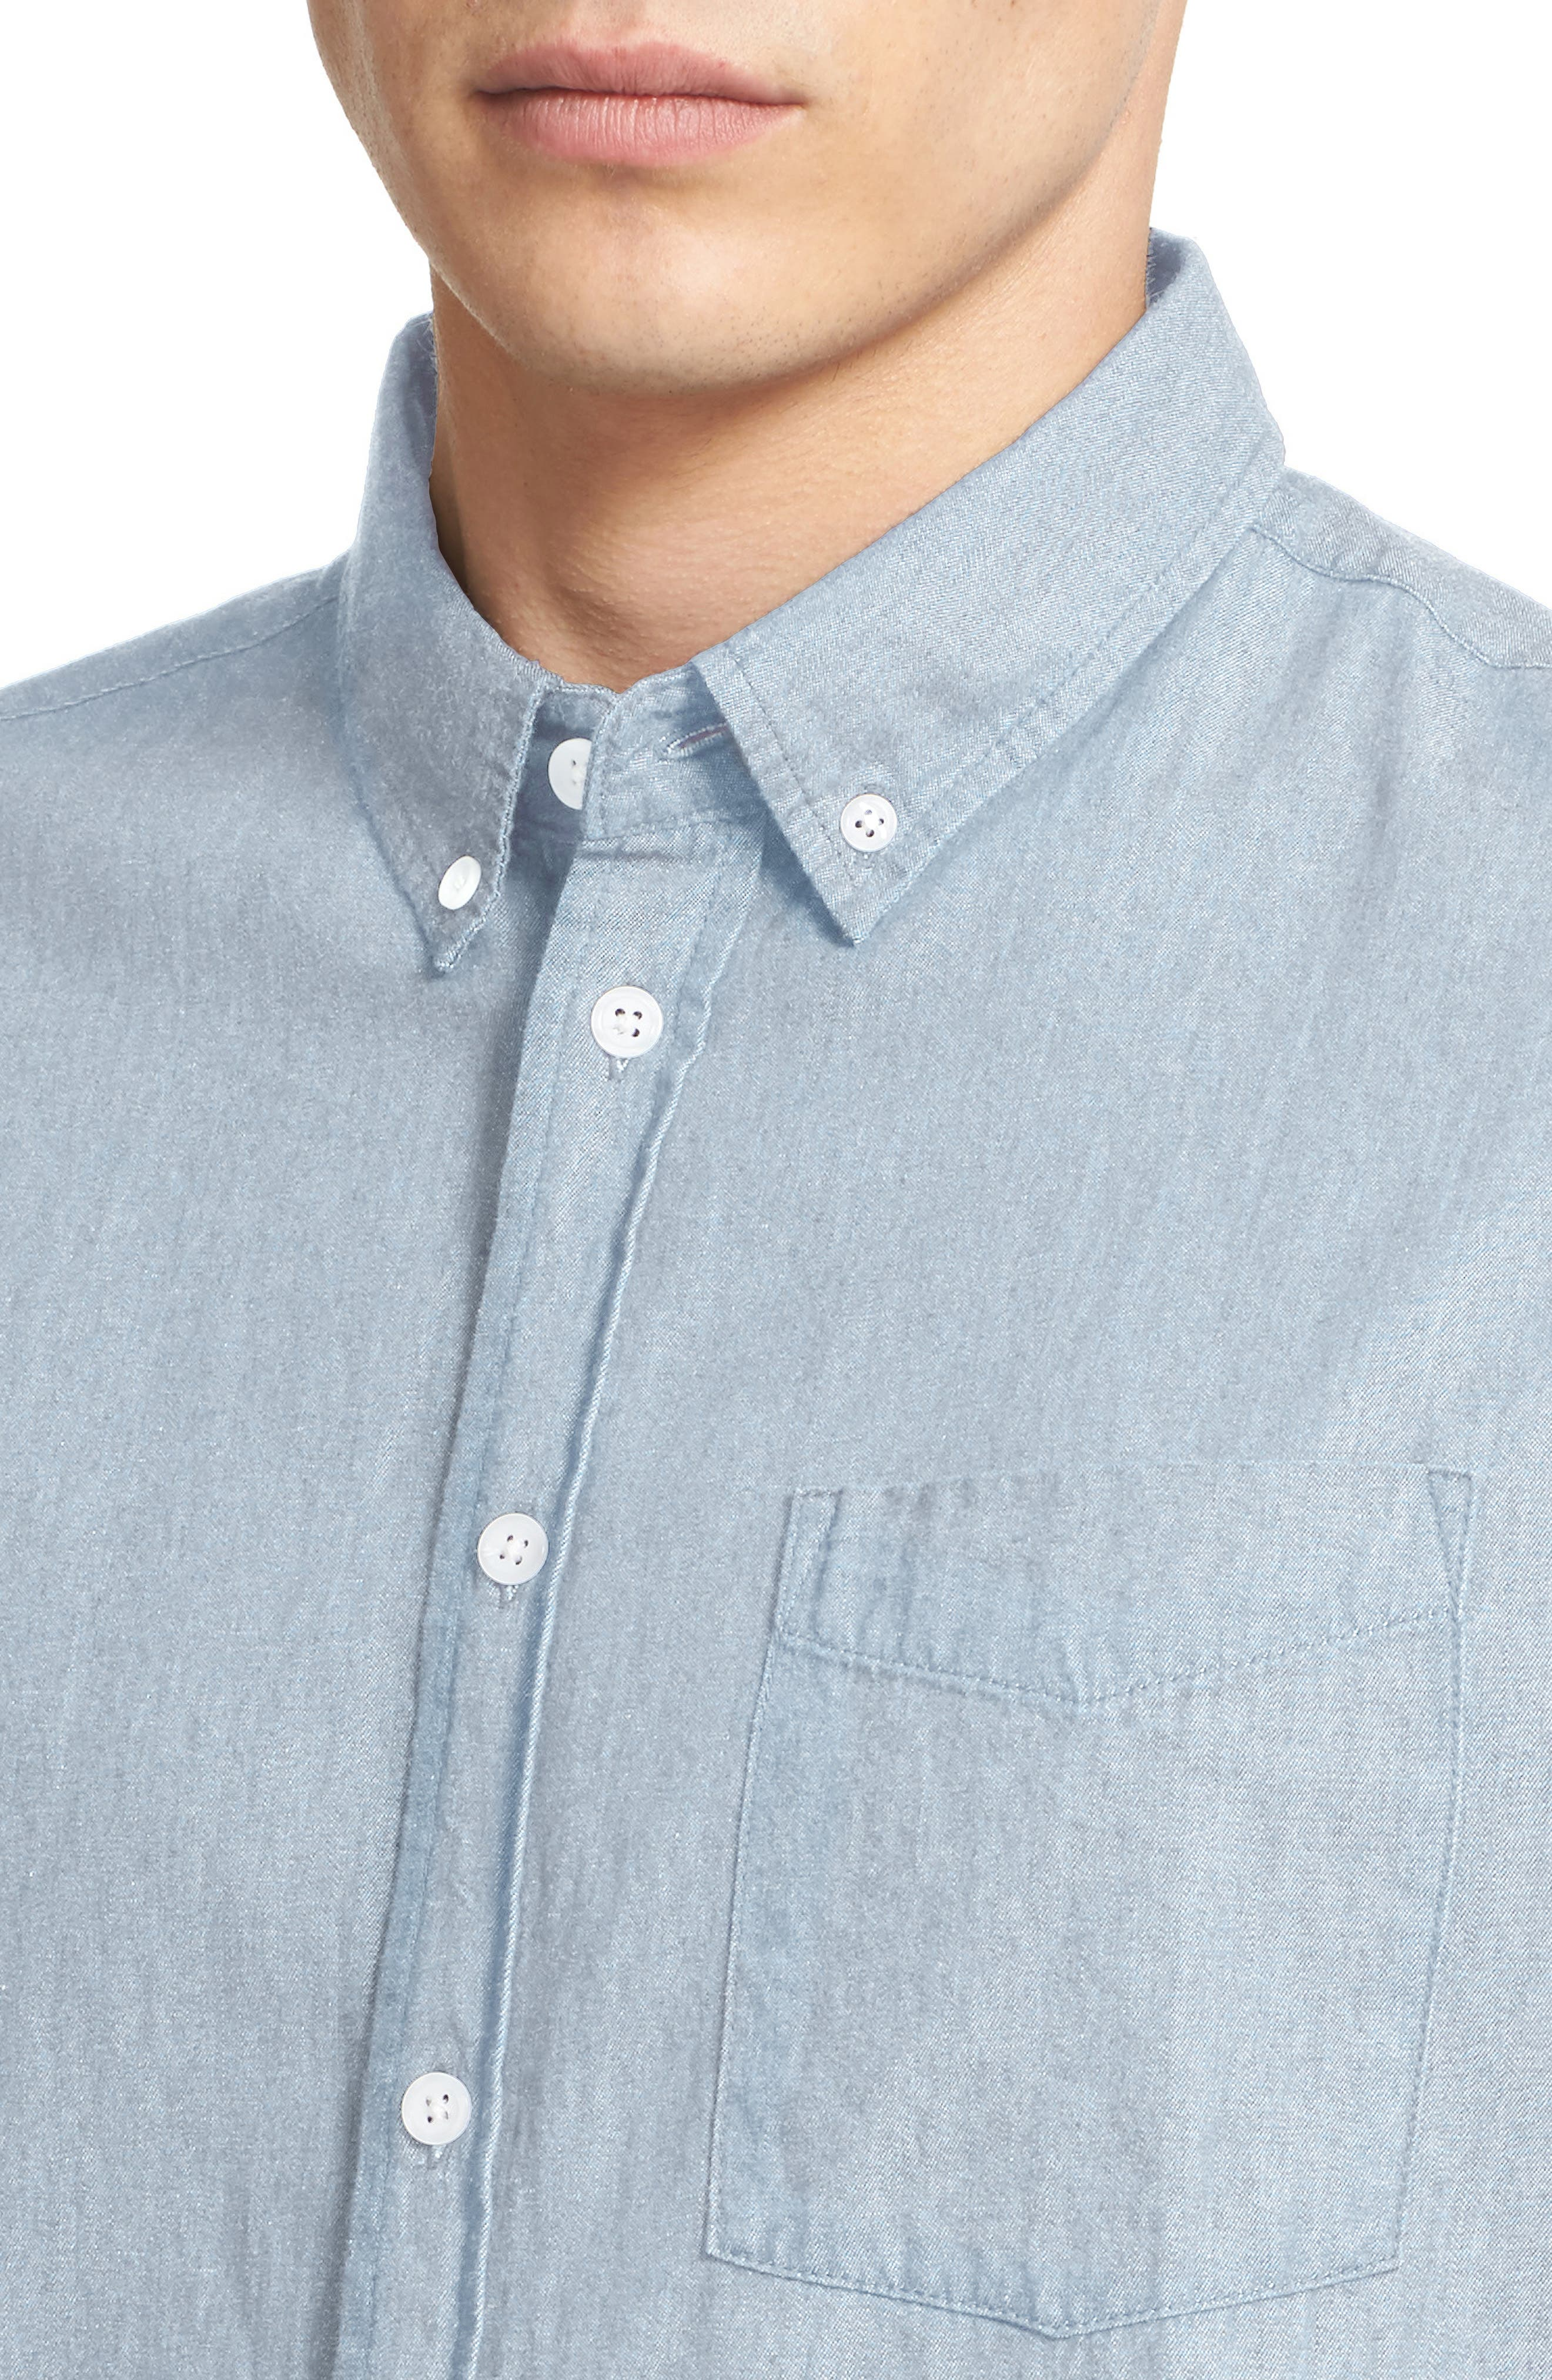 Esquina Slim Fit Denim Sport Shirt,                             Alternate thumbnail 5, color,                             WASHED INDIGO